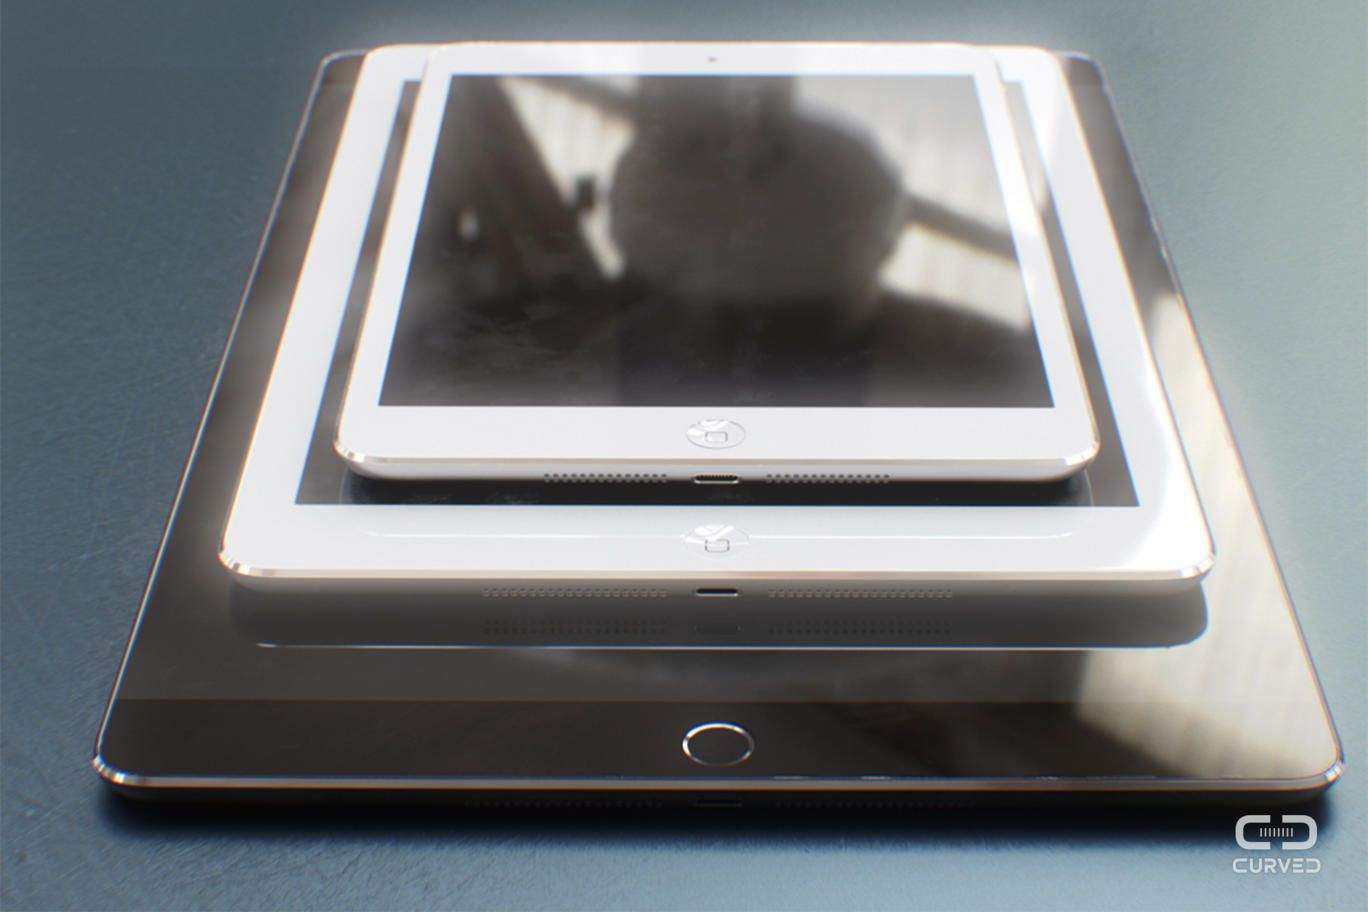 Are you ready for the giant-sized iPad Pro? We are. Photo: CURVED